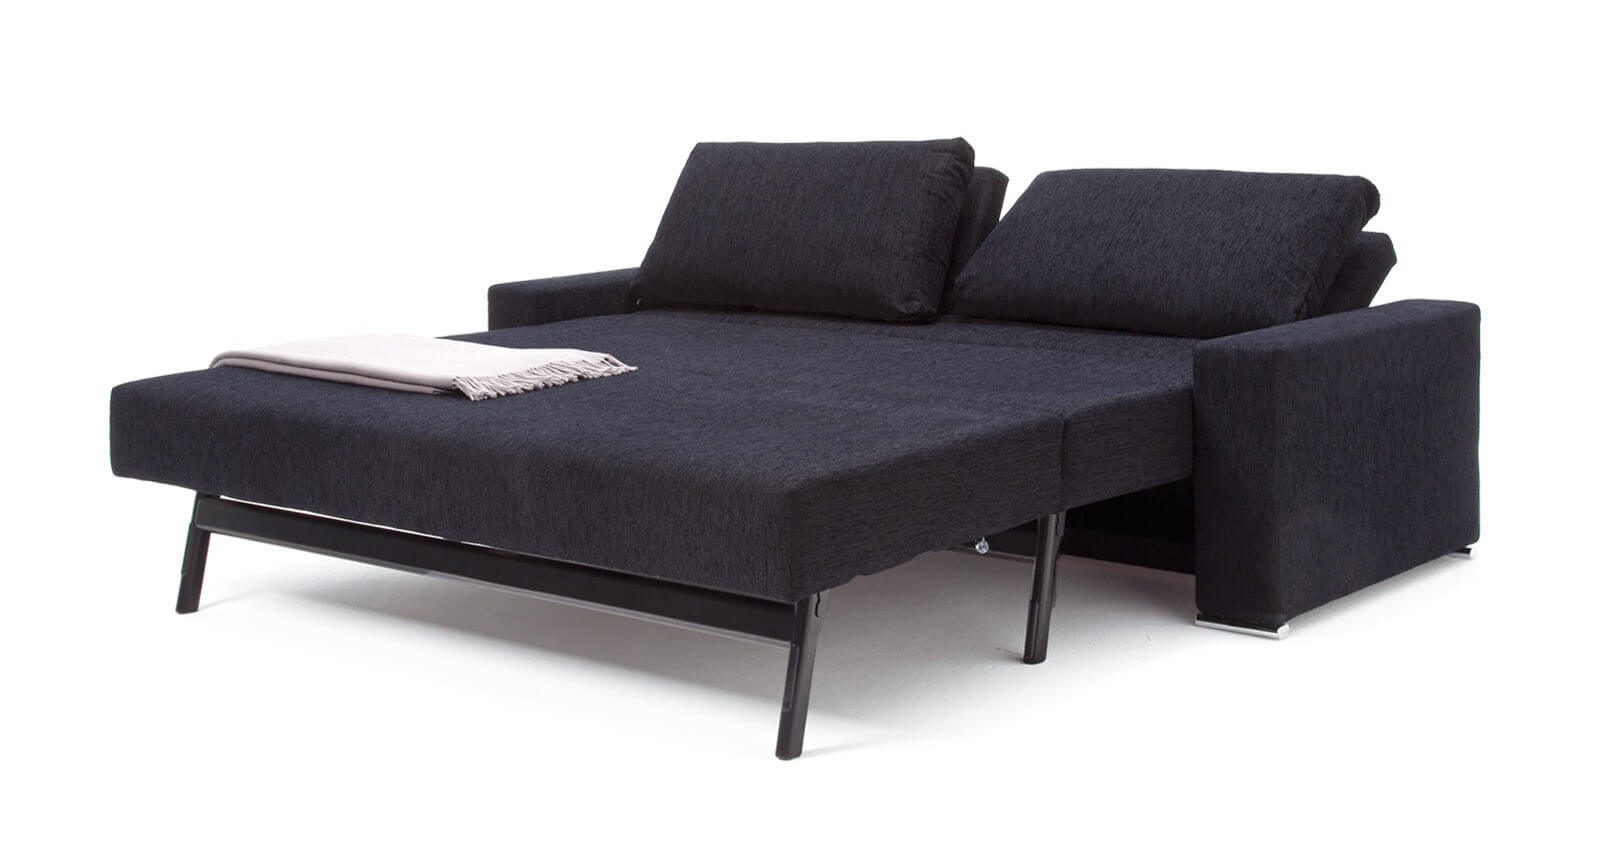 loop sofa bed. Black Bedroom Furniture Sets. Home Design Ideas